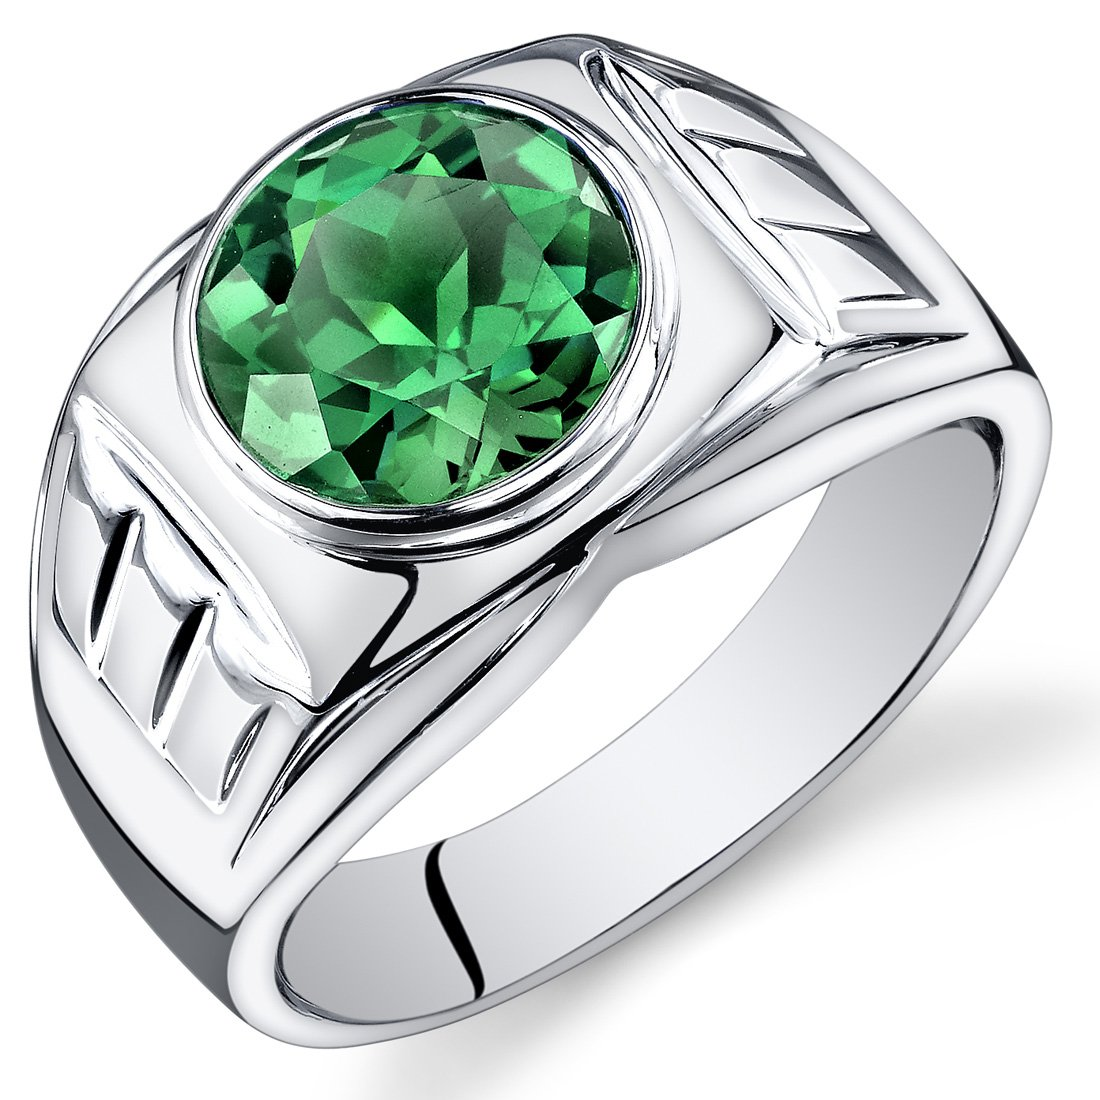 Mens 4.50 Carats Simulated Emerald Ring Sterling Silver Size 10